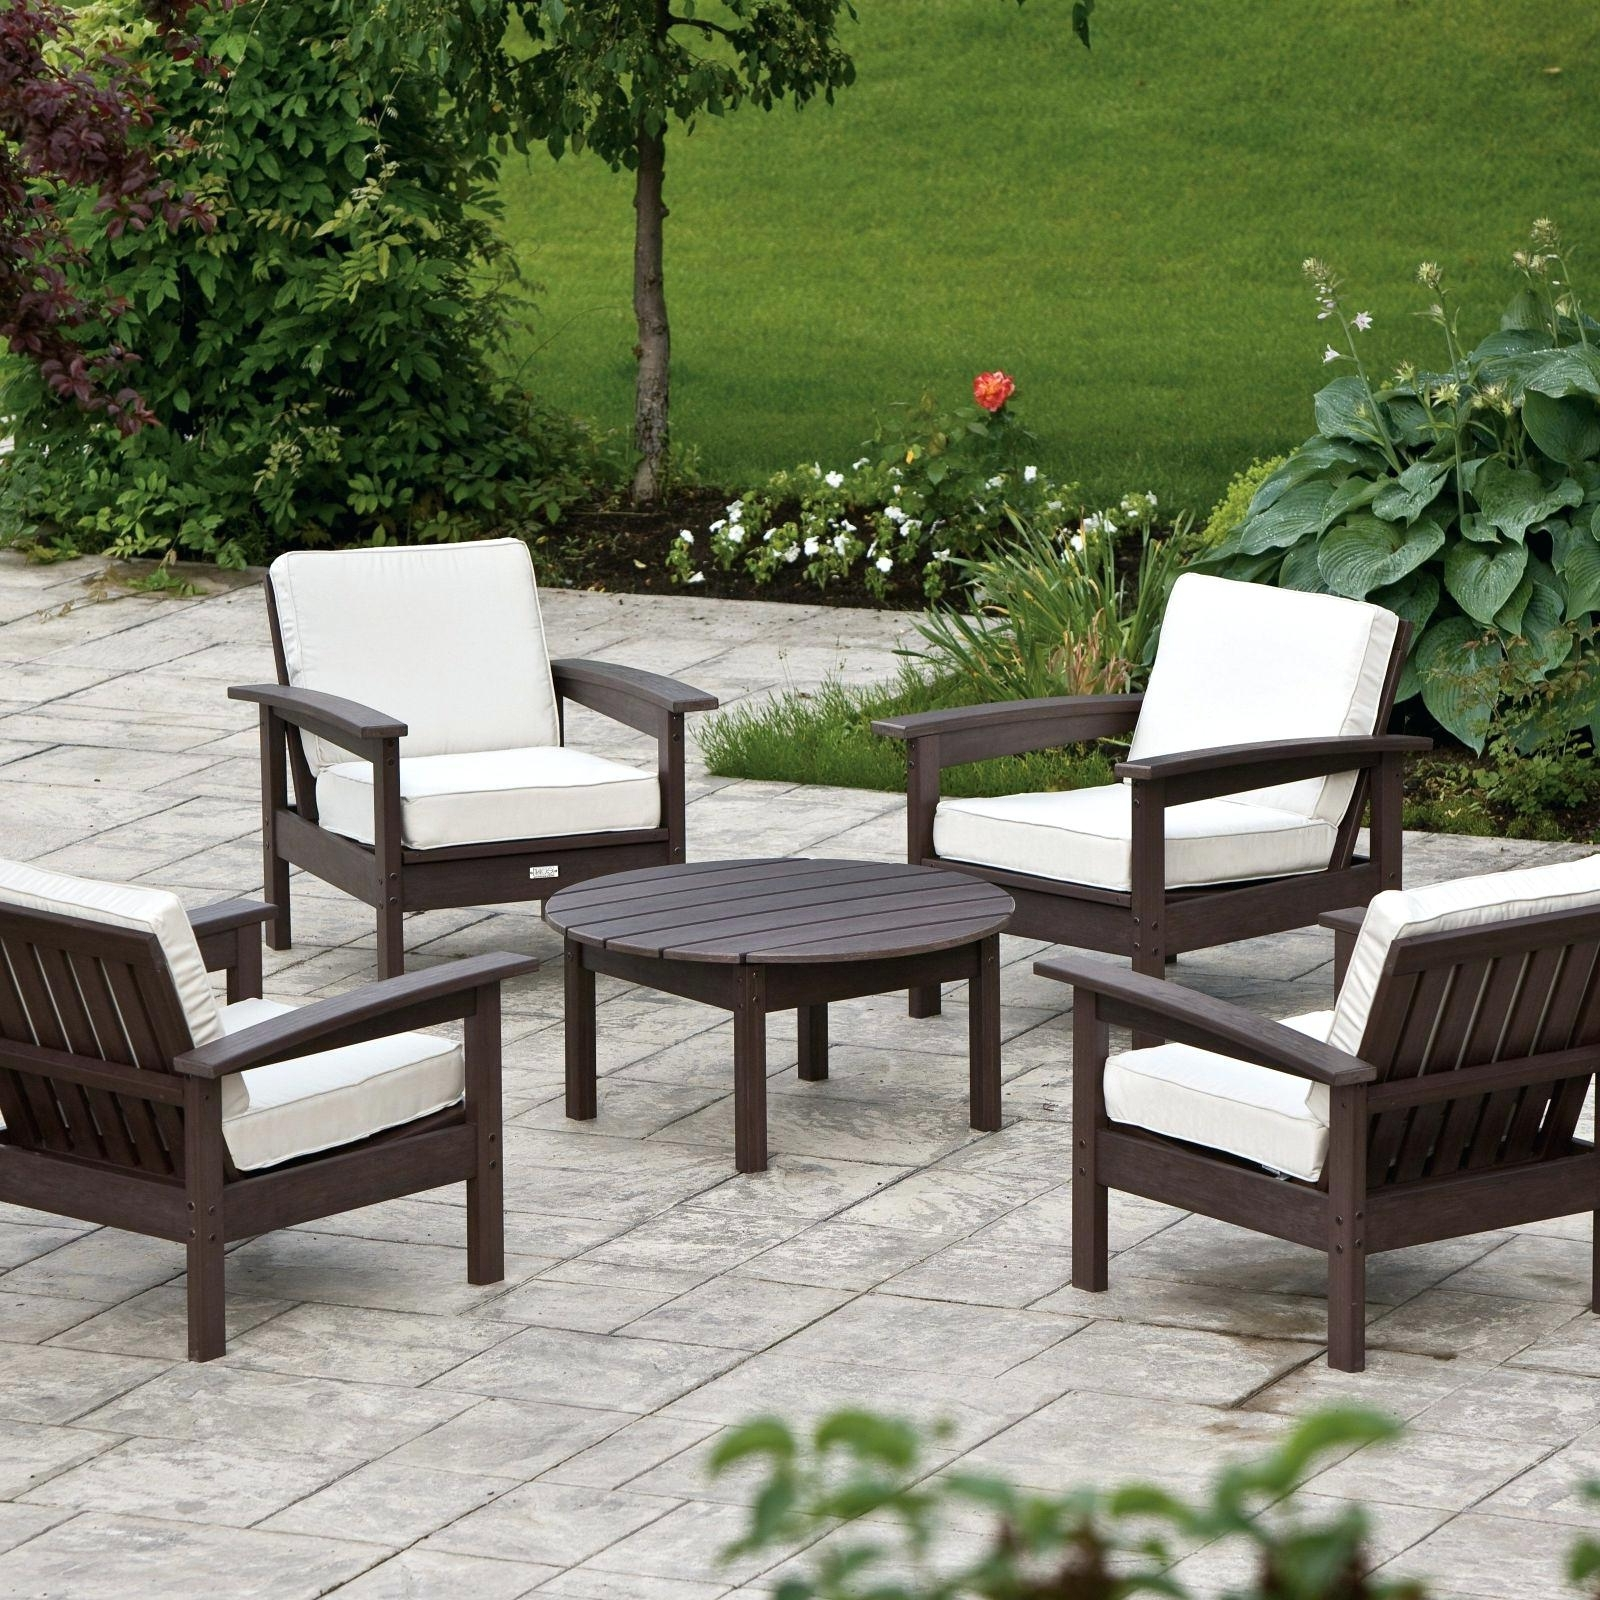 Nfm Patio Conversation Sets With Recent Patio Conversation Sets Under 500 #4701257ba631 – Mylowt (View 20 of 20)